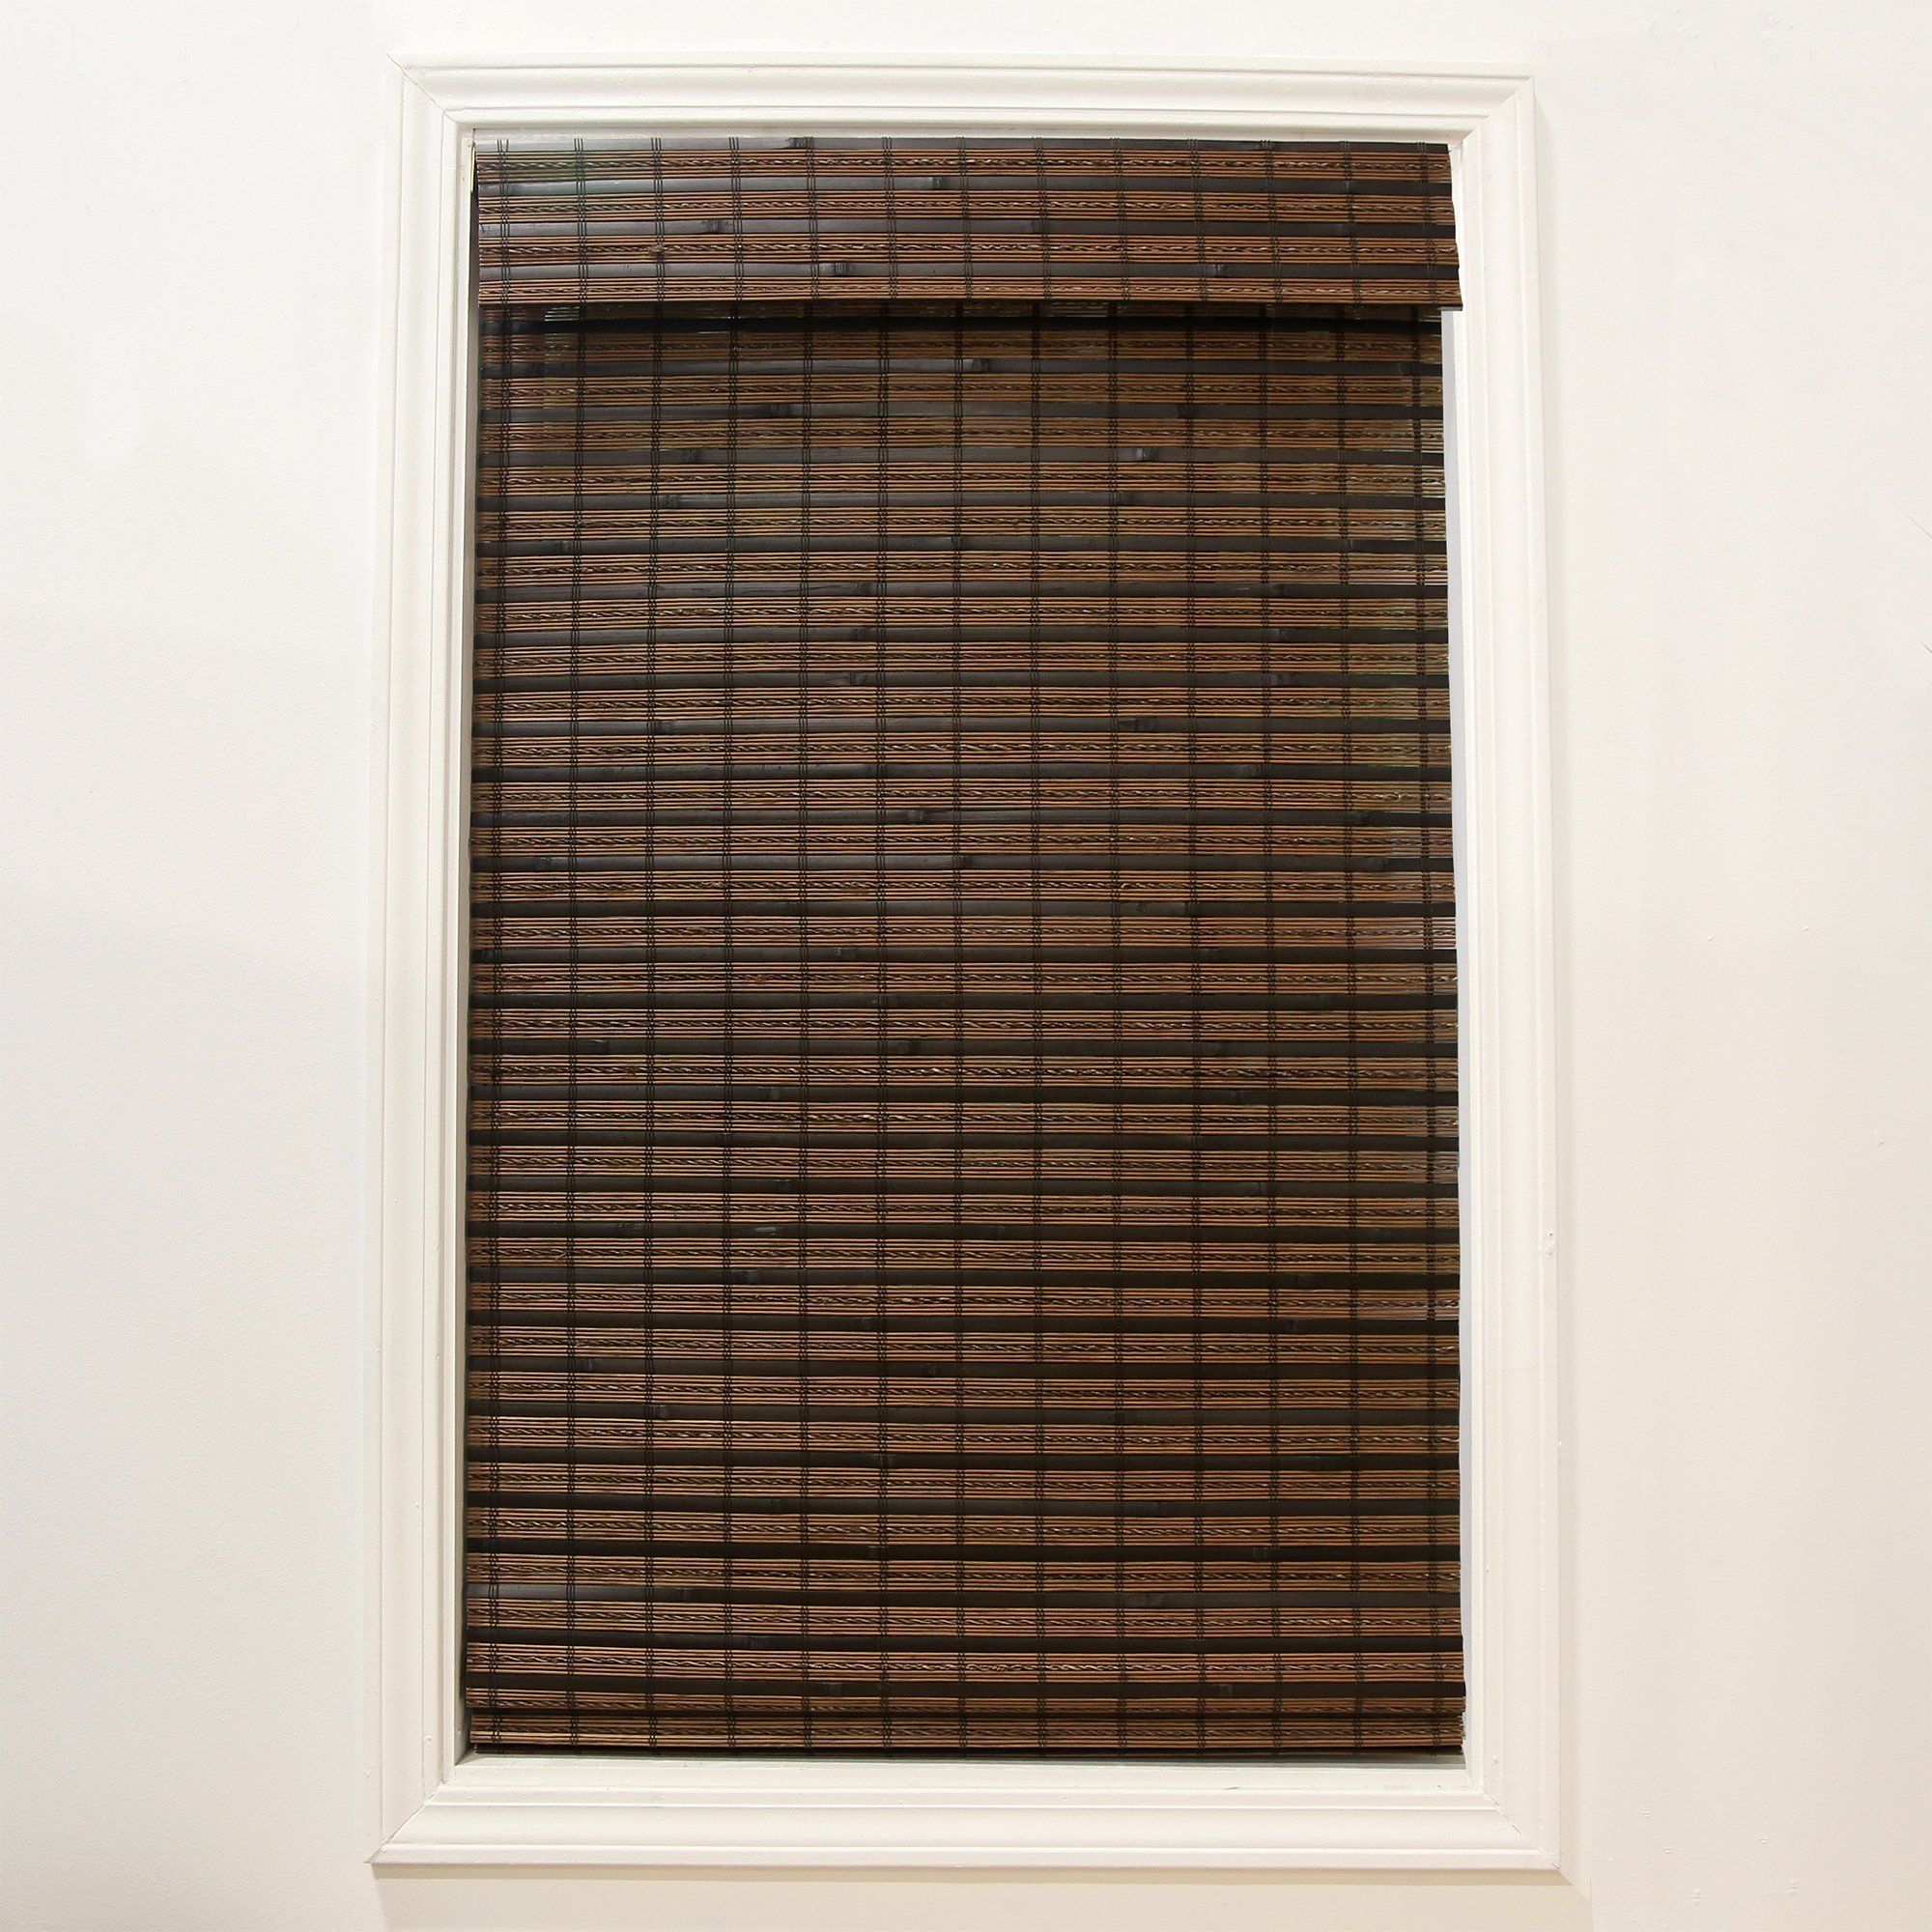 Radiance Cordless Cocoa Havana Flatweave Bamboo Roman Shade, 27 in. W x 64 in. L by RADIANCE